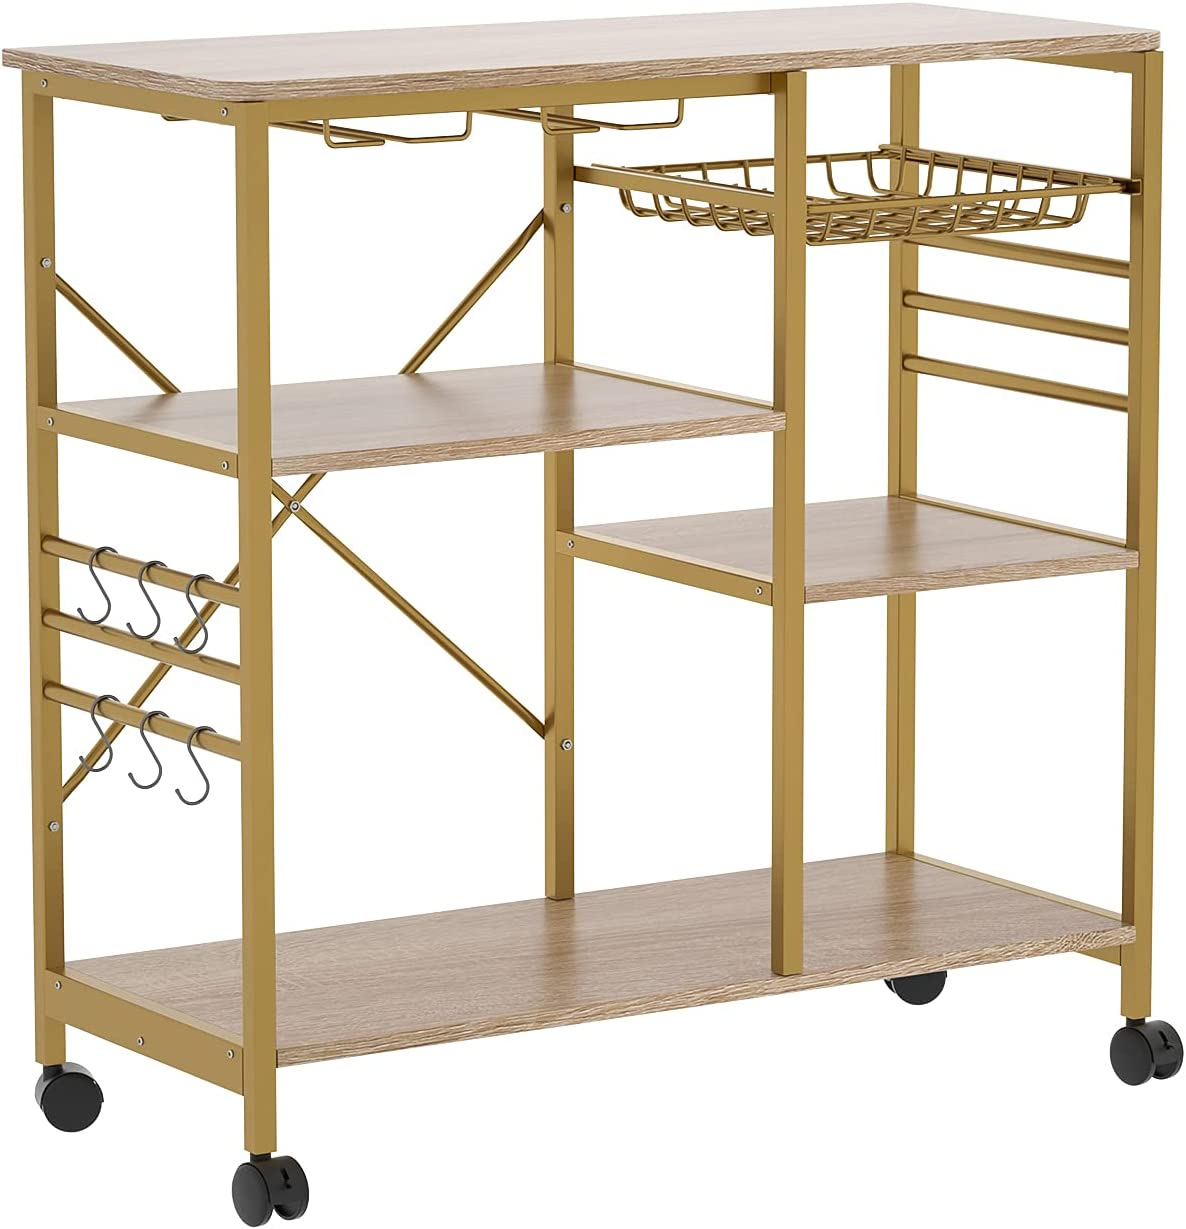 store Microwave Stand Bakers Rack 4-Tier+3-Tier Wine with Jacksonville Mall and 6 Hooks